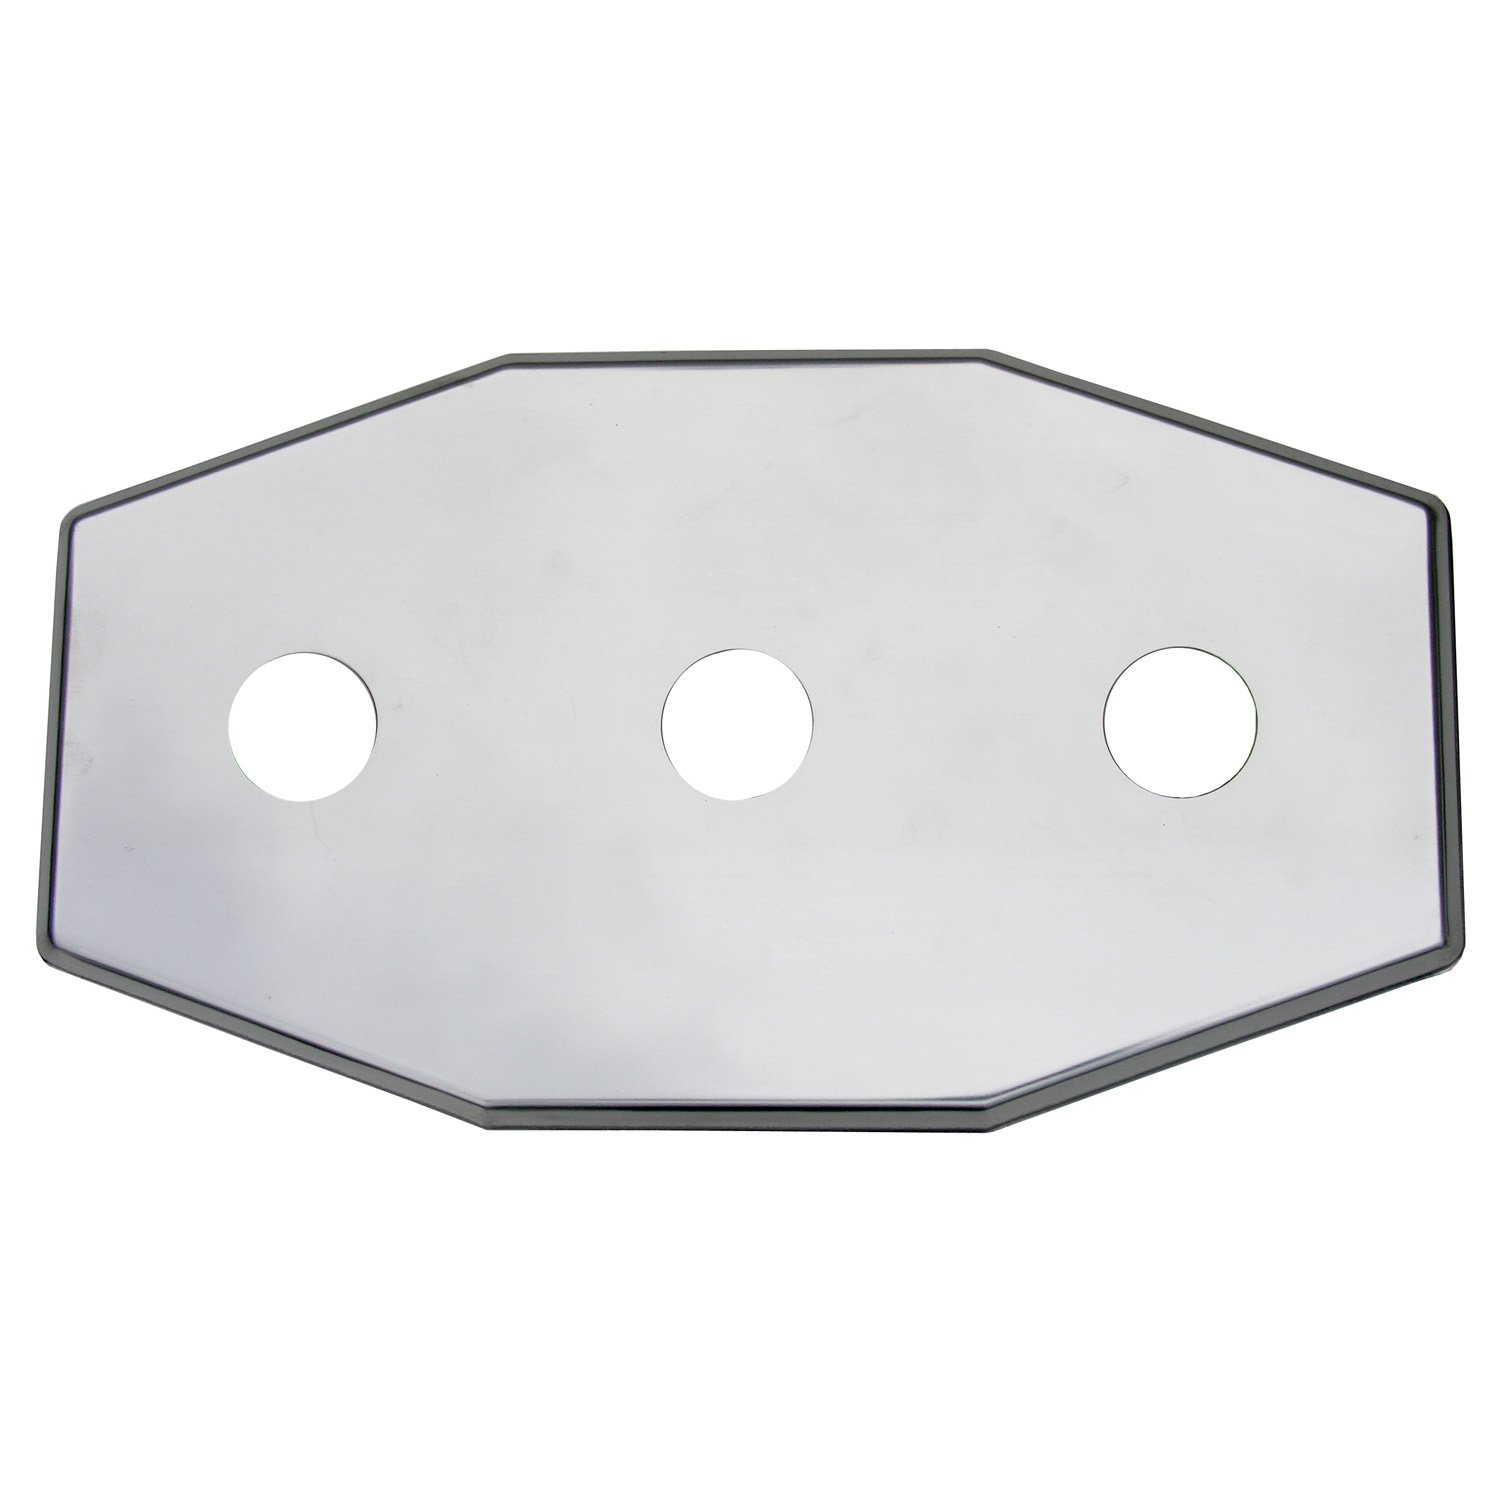 Simpatico 31655C Stainless Steel Remodel Plate, 3 Hole Fits Any 8'' Center, Tub And Shower Valve, Chrome Plated